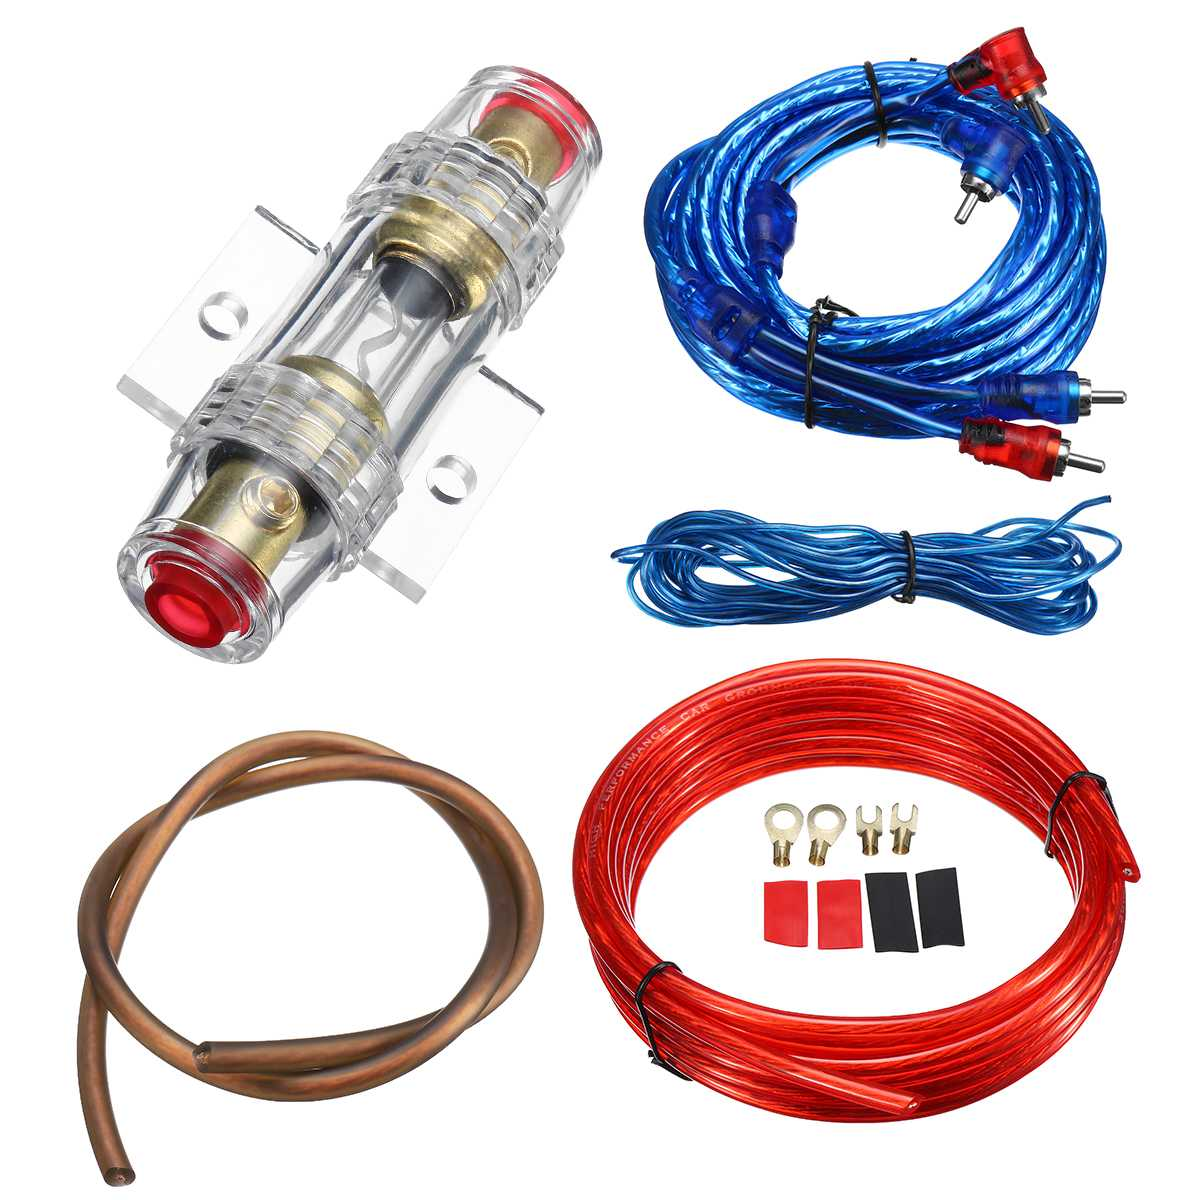 1500w car audio wire 8ga amplifier cable subwoofer speaker installation kit amp rca power cable agu fuse set in battery cables connectors from automobiles  [ 1200 x 1200 Pixel ]